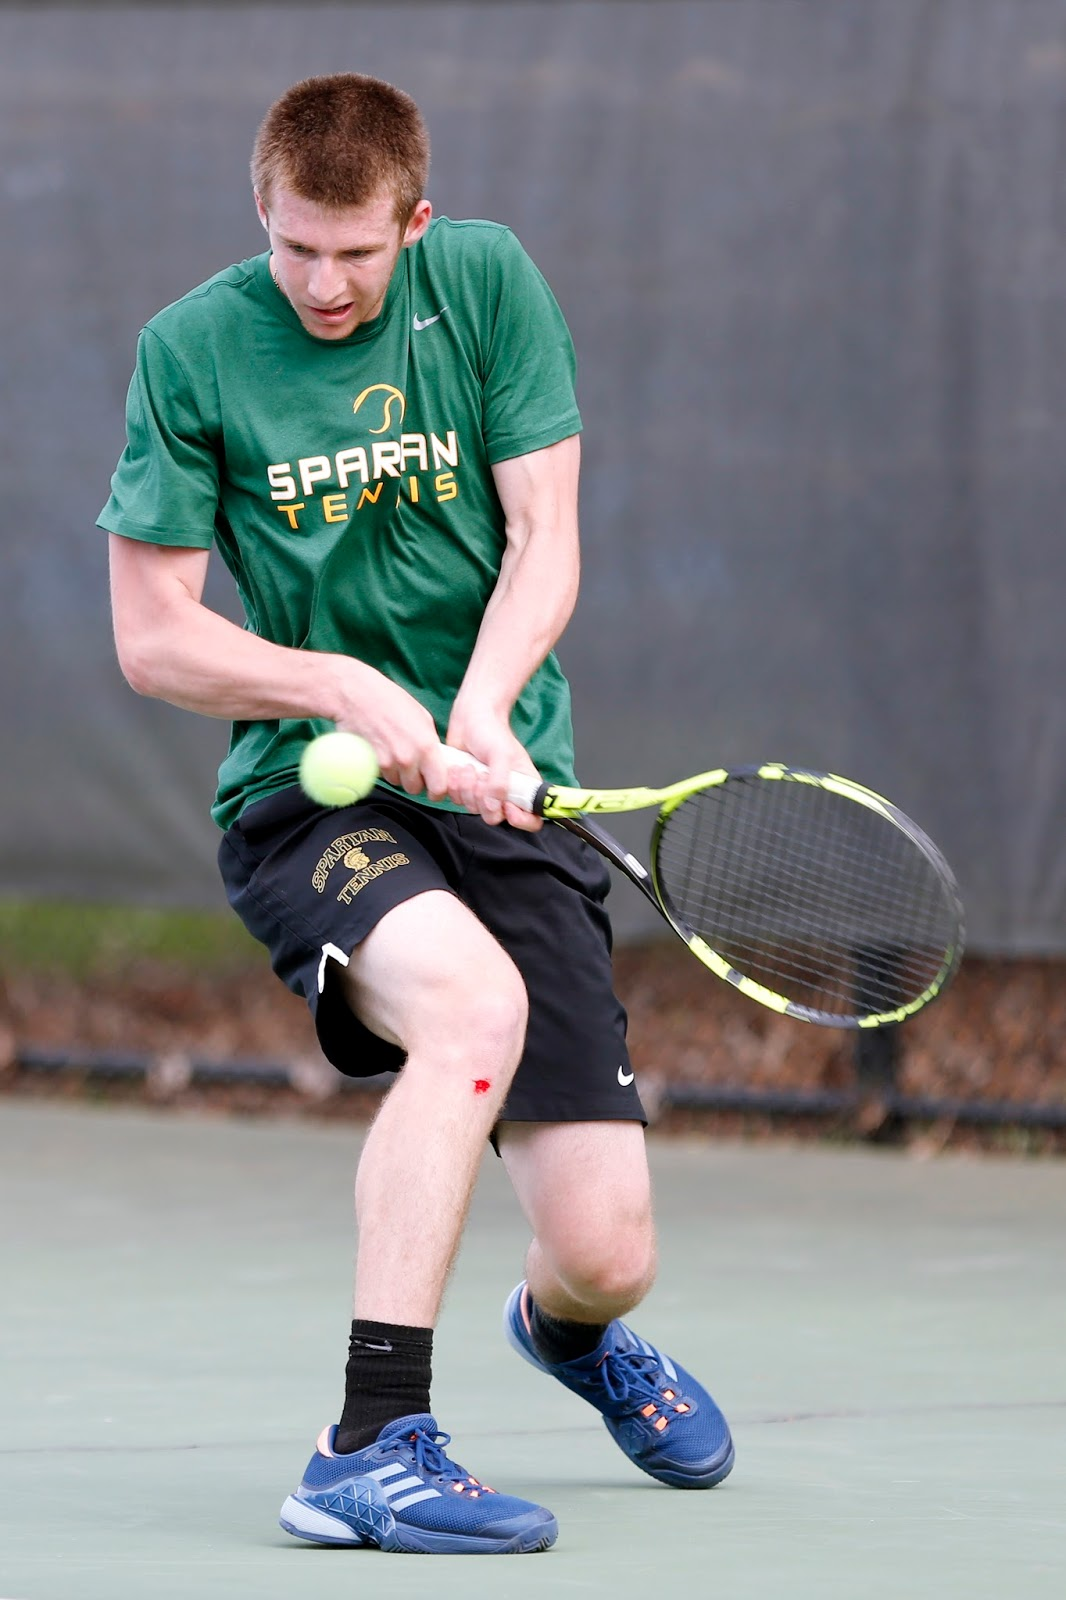 glenbrook single personals Glenbrook south figures to be one of the area's strongest girls tennis teams, with minnesota commit annemarie emme, martina dragoytchev and jessica chepurda all entering.